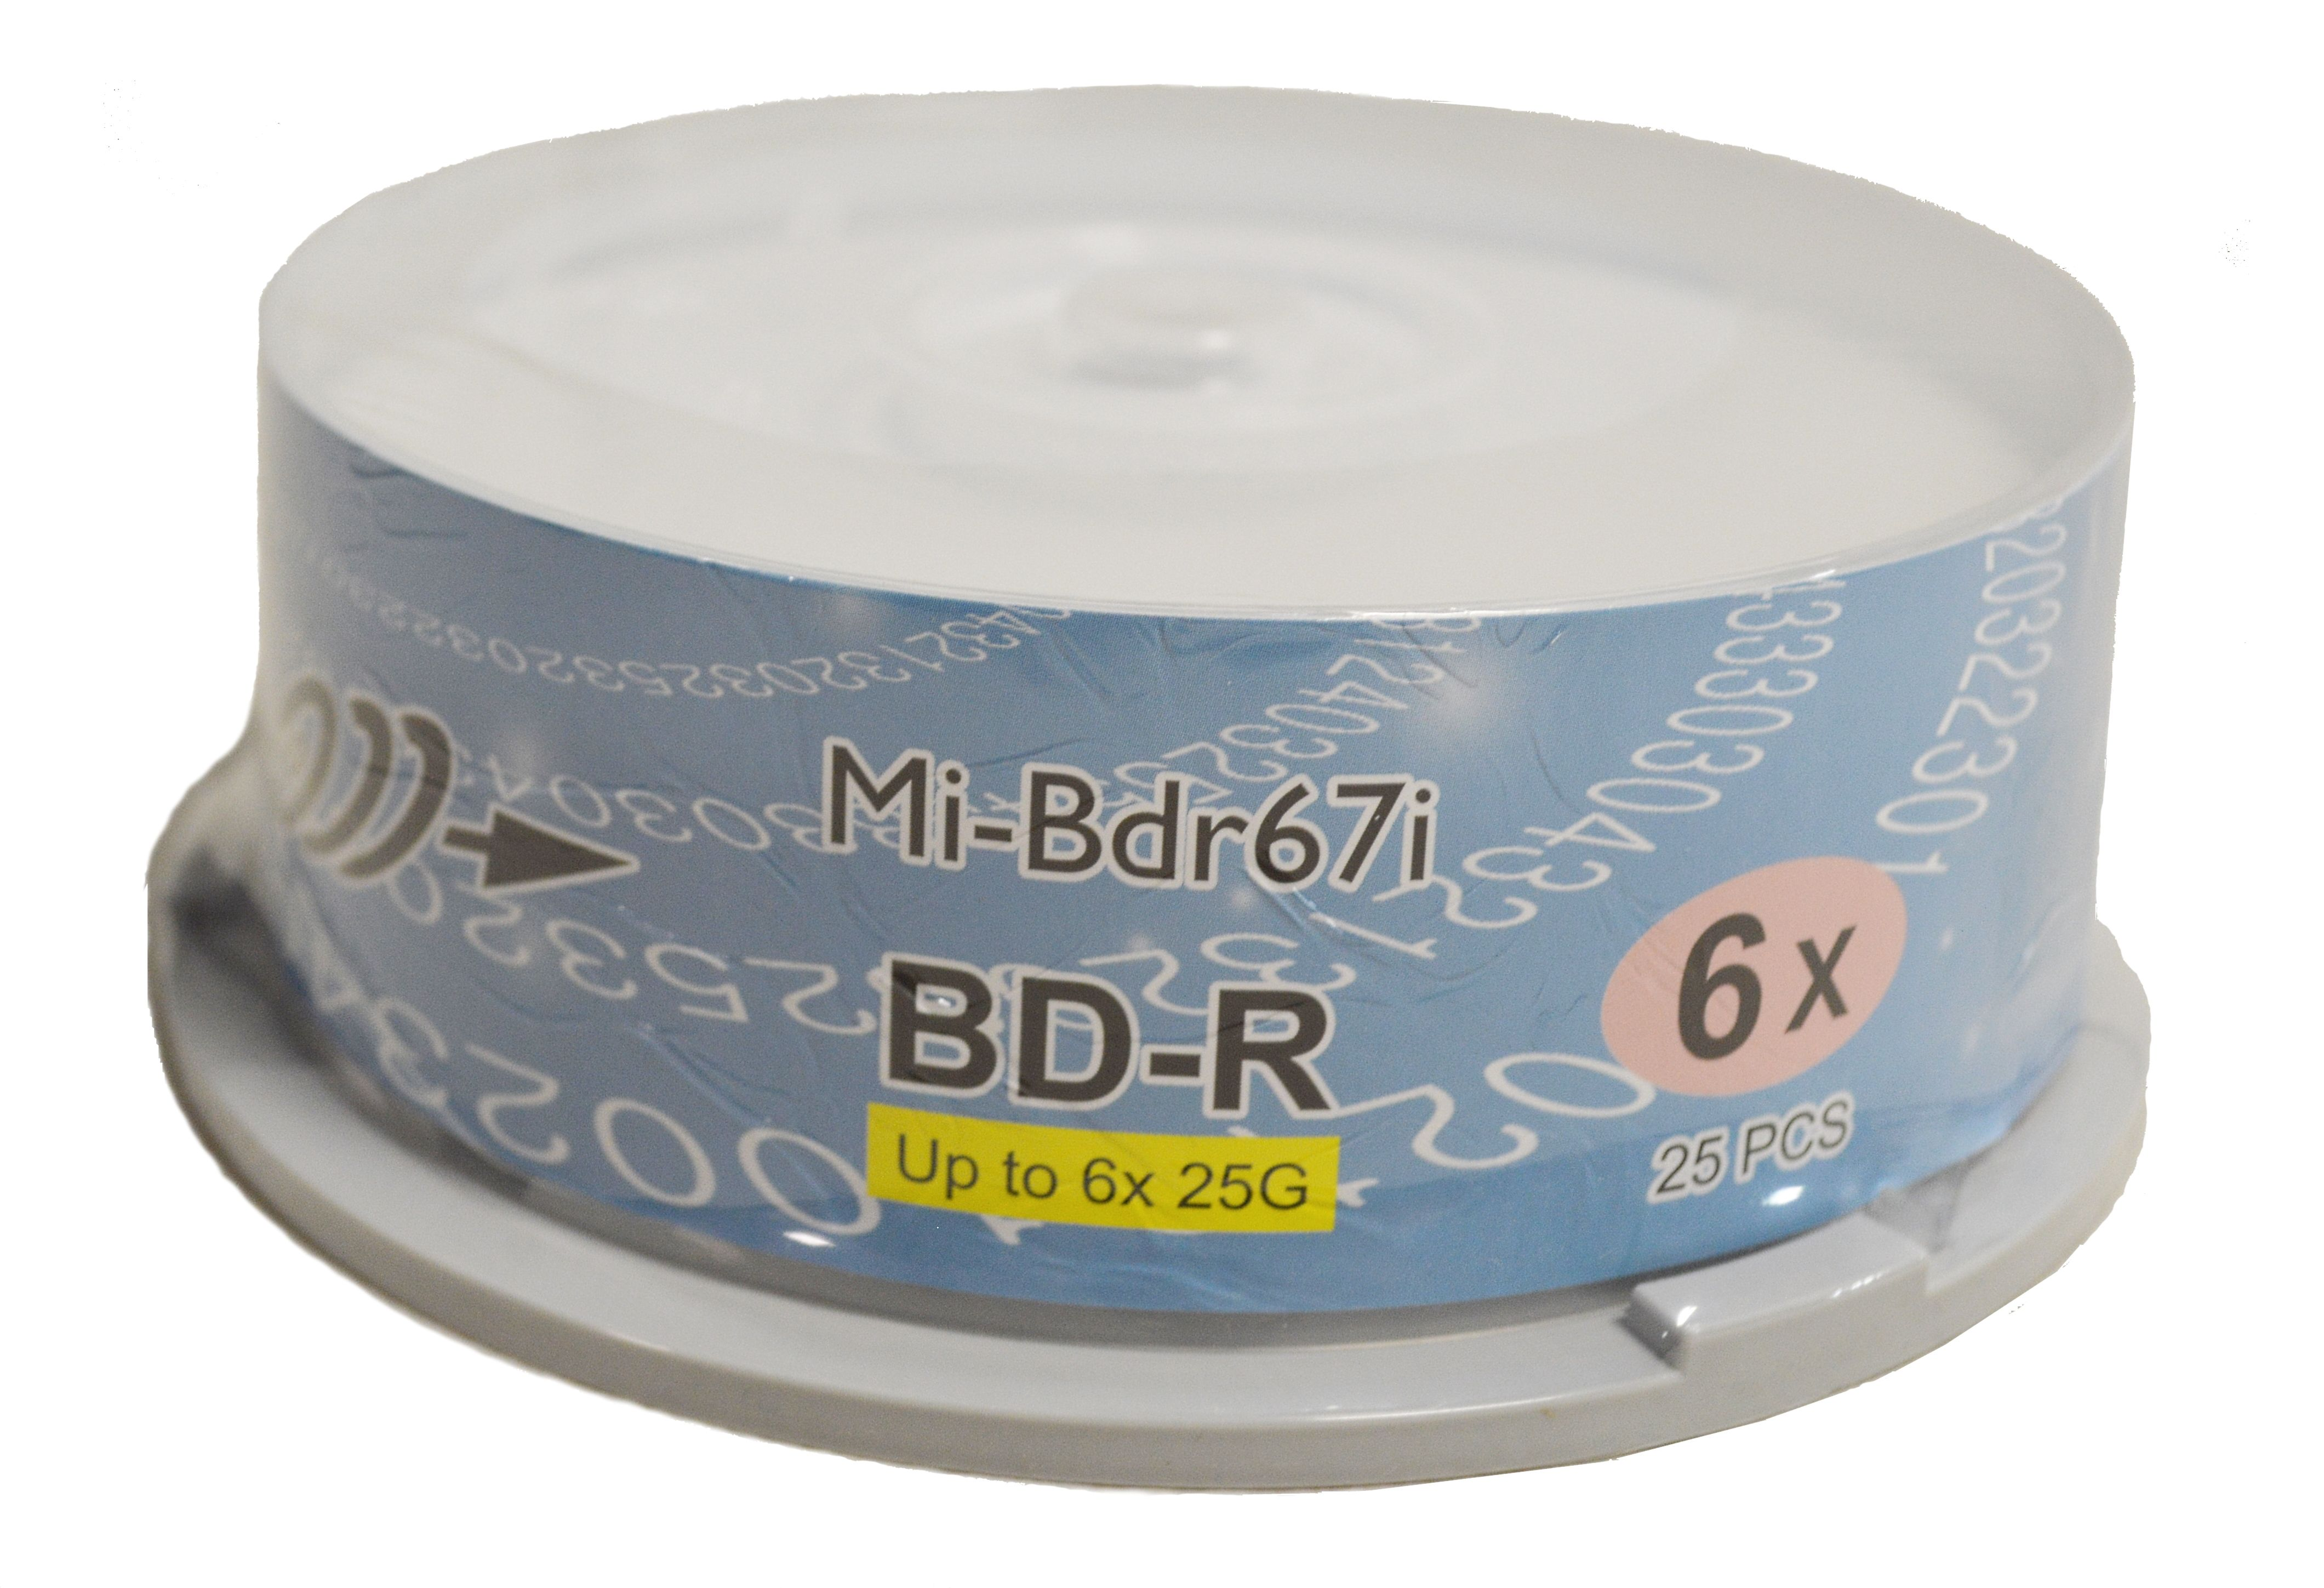 image relating to Printable Blu Ray Discs identify Copystars Blu Ray Media Discs BD-R Disc 25 GB 6X White Inkjet Printable Blank Medias Solitary Layer Recordable Disc Spindle 25personal computers